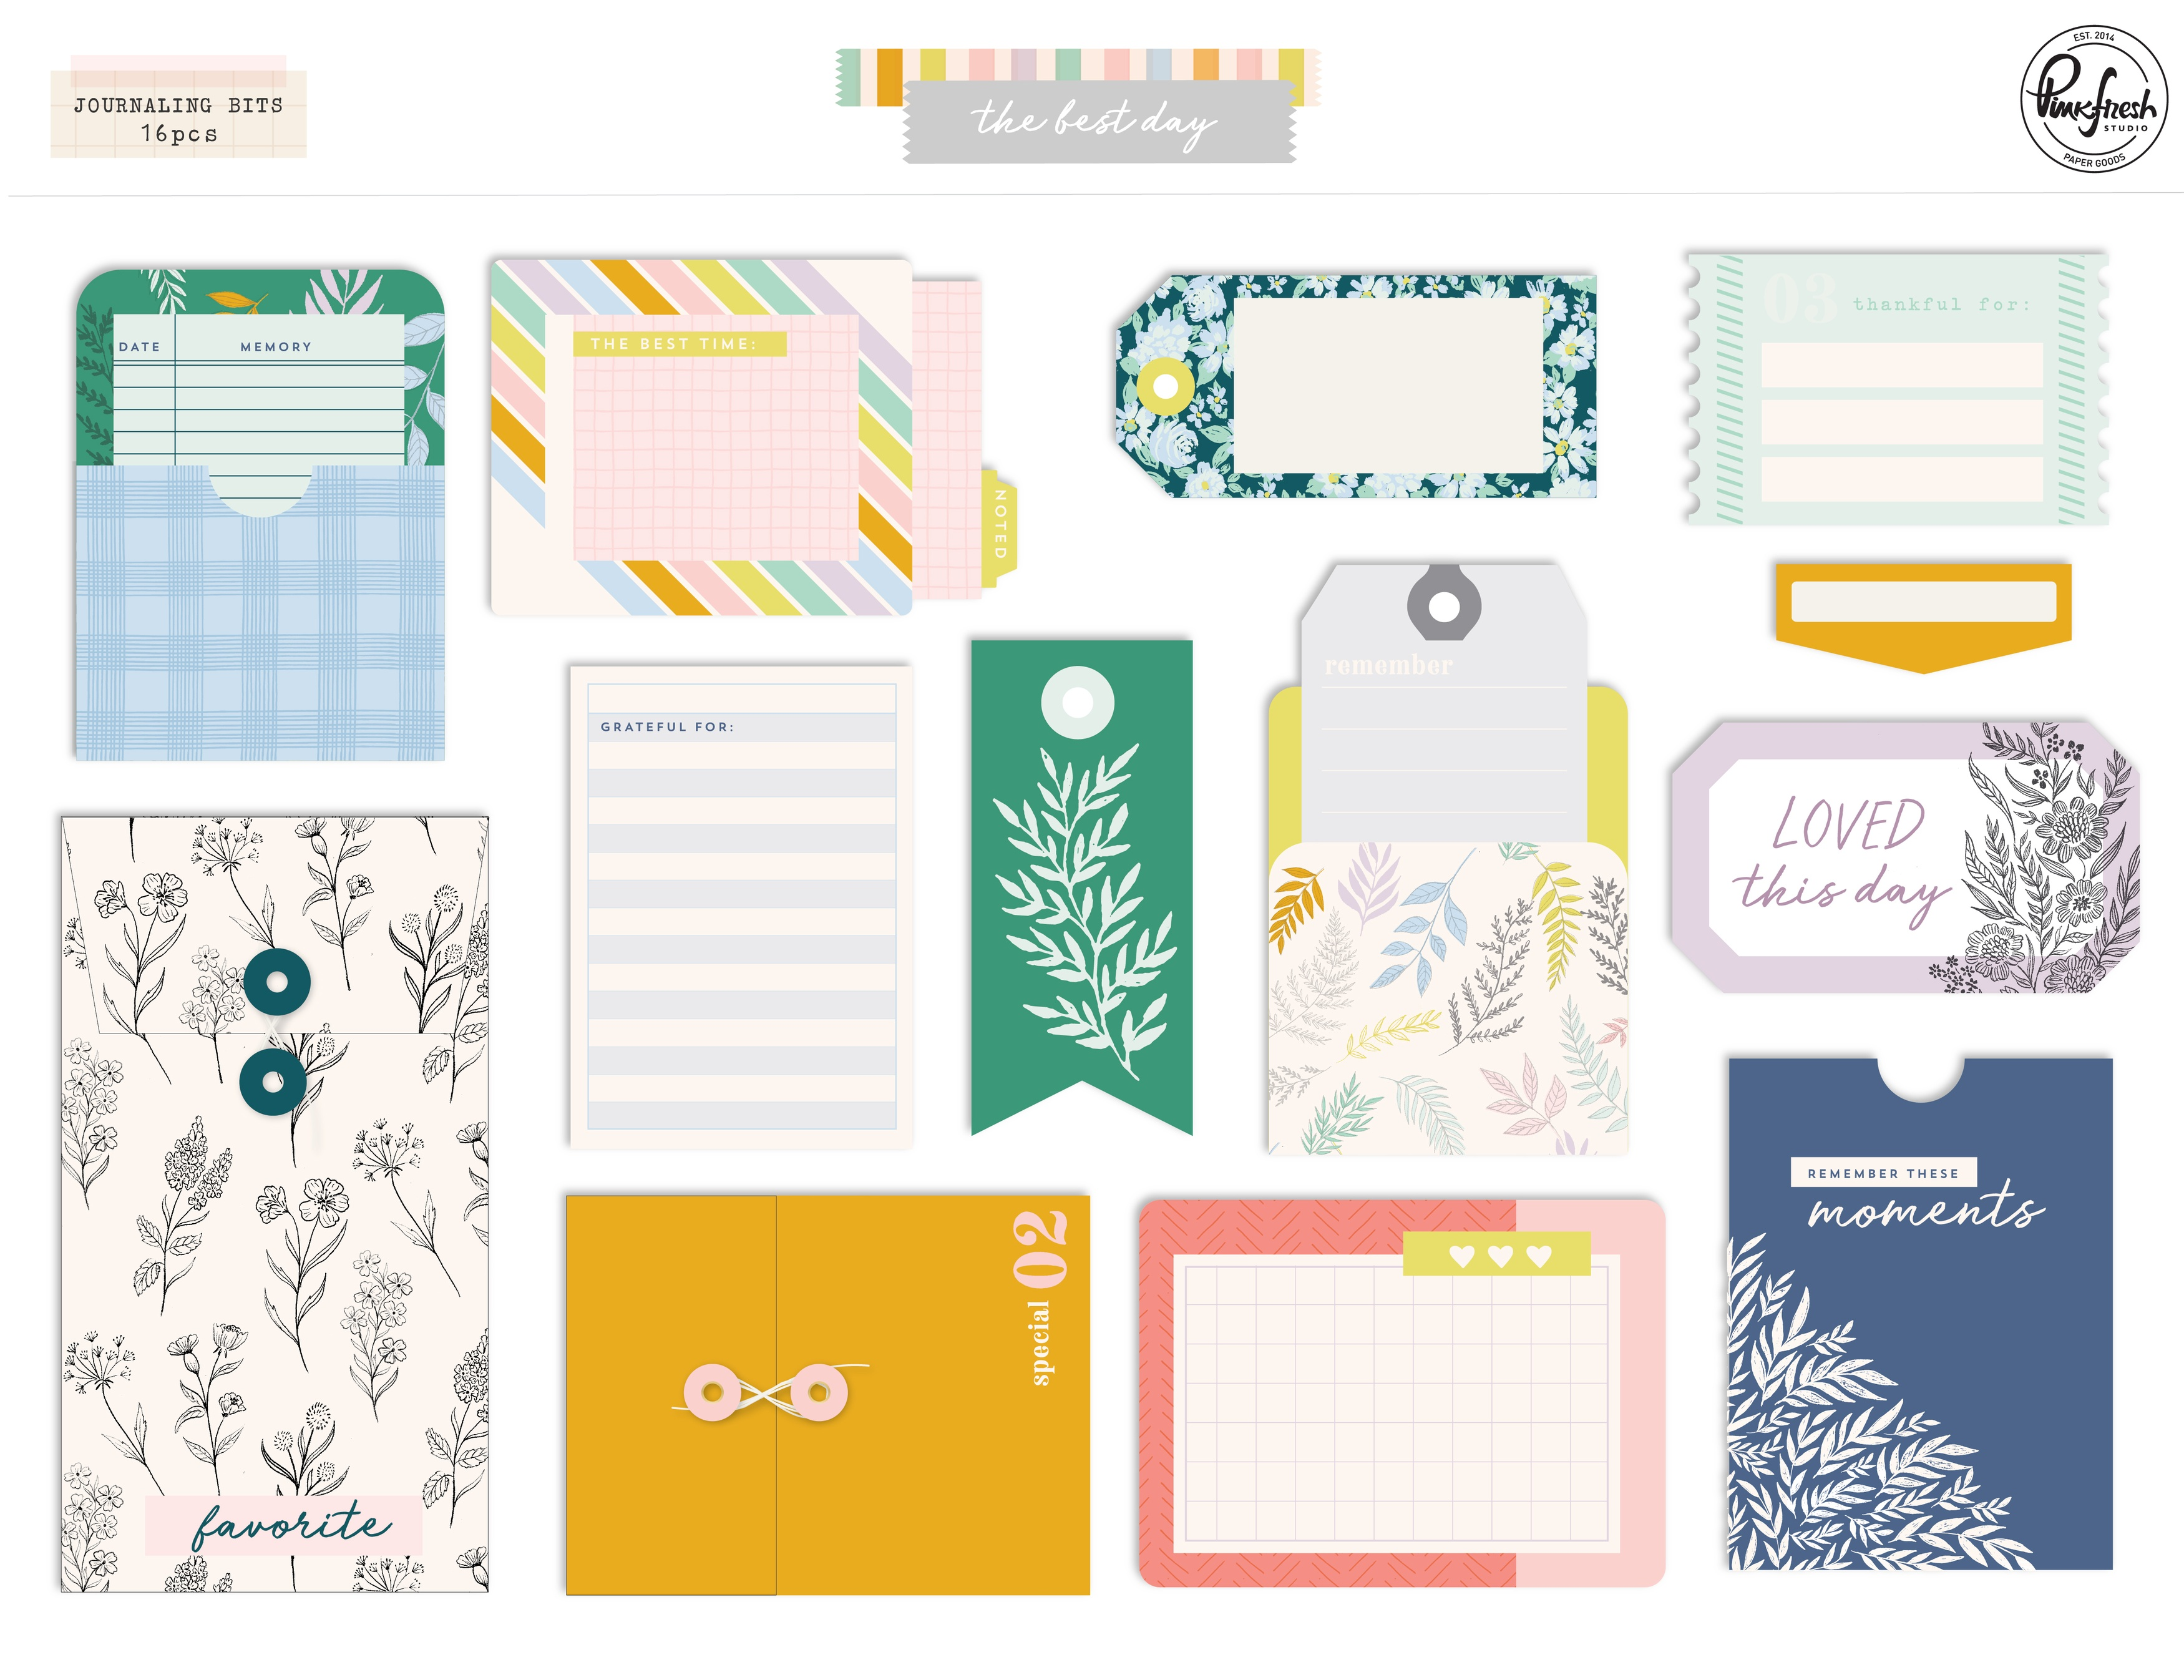 The Best Day Journaling Bits 14/Pkg